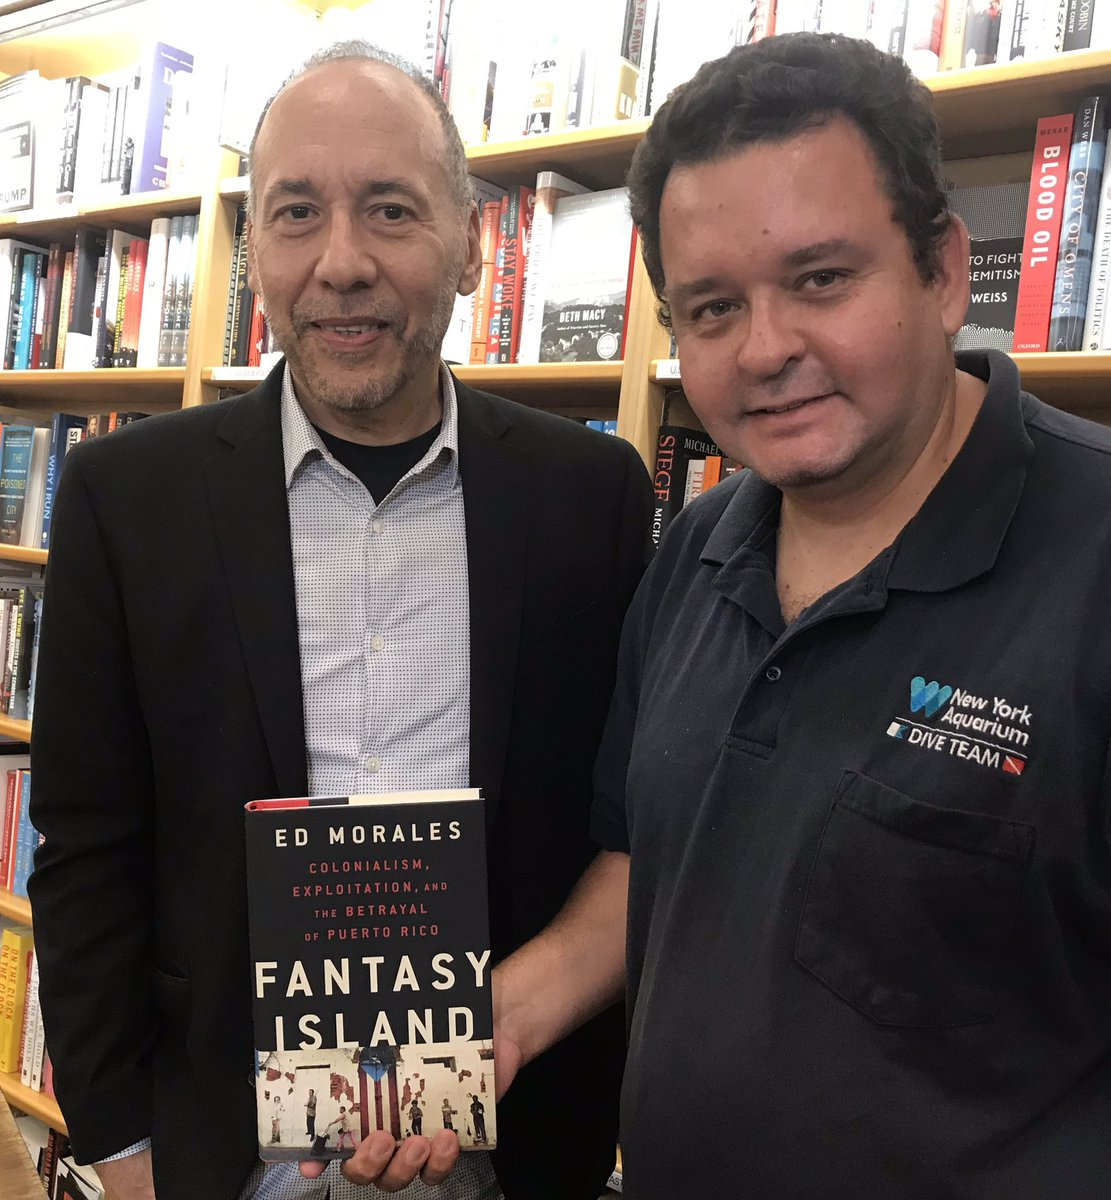 Looking forward to reading Ed Morales new book Fsntasy Island; about recent history in Puerto Rico. @SpanglishKid @PRparadeNYC @LatinxinPub @DefendPR @CentroPR @NBCLatino @DavidBegnaud